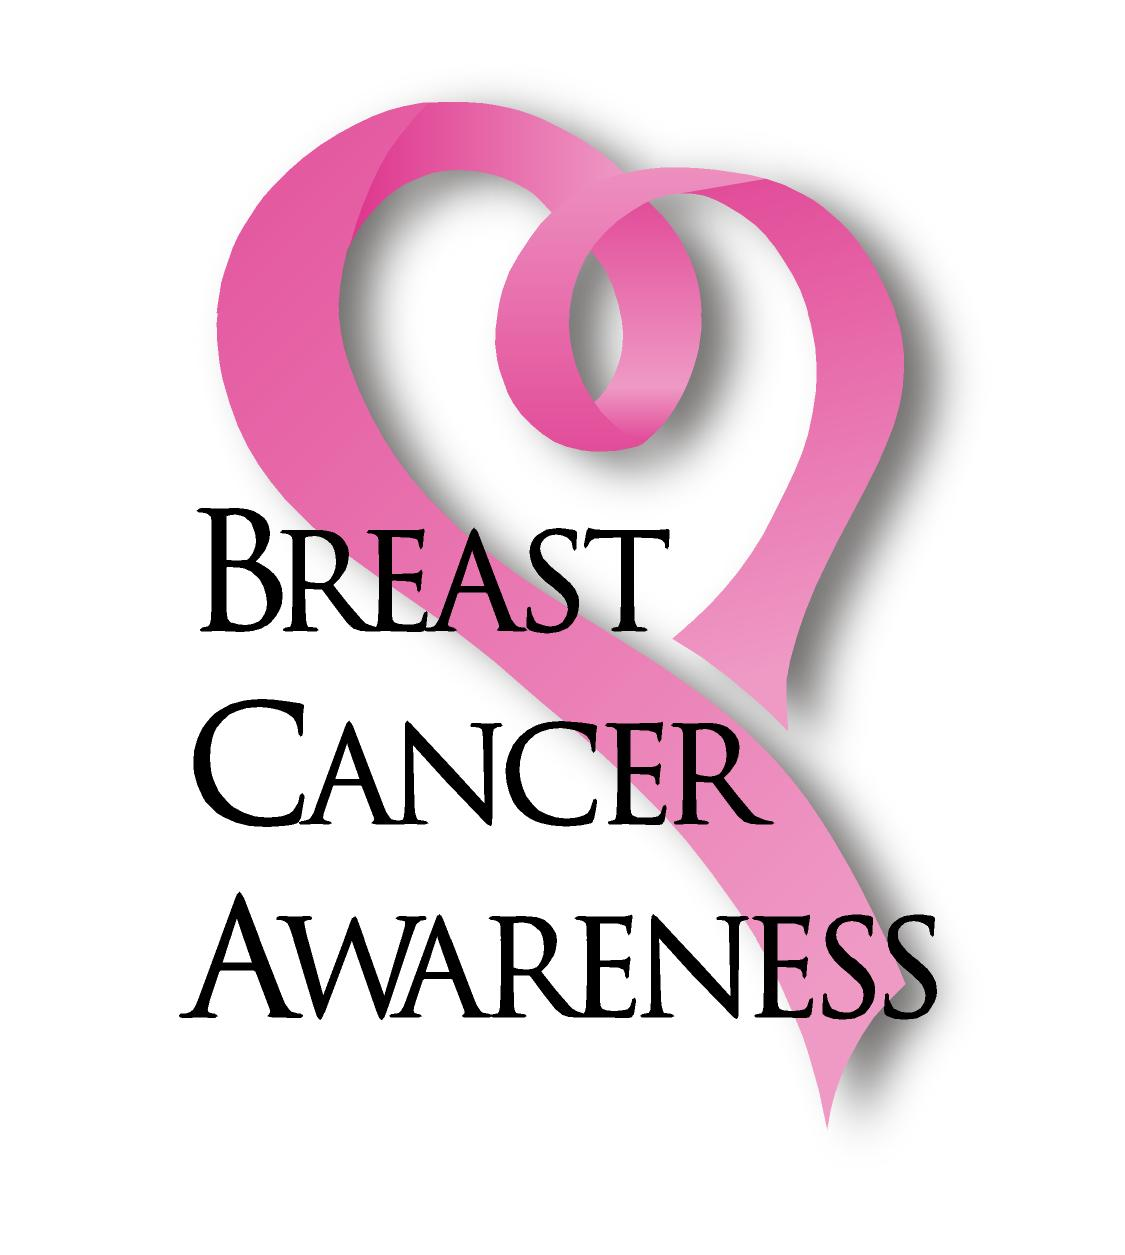 Breast-Cancer-Awareness-pink-ribbon1